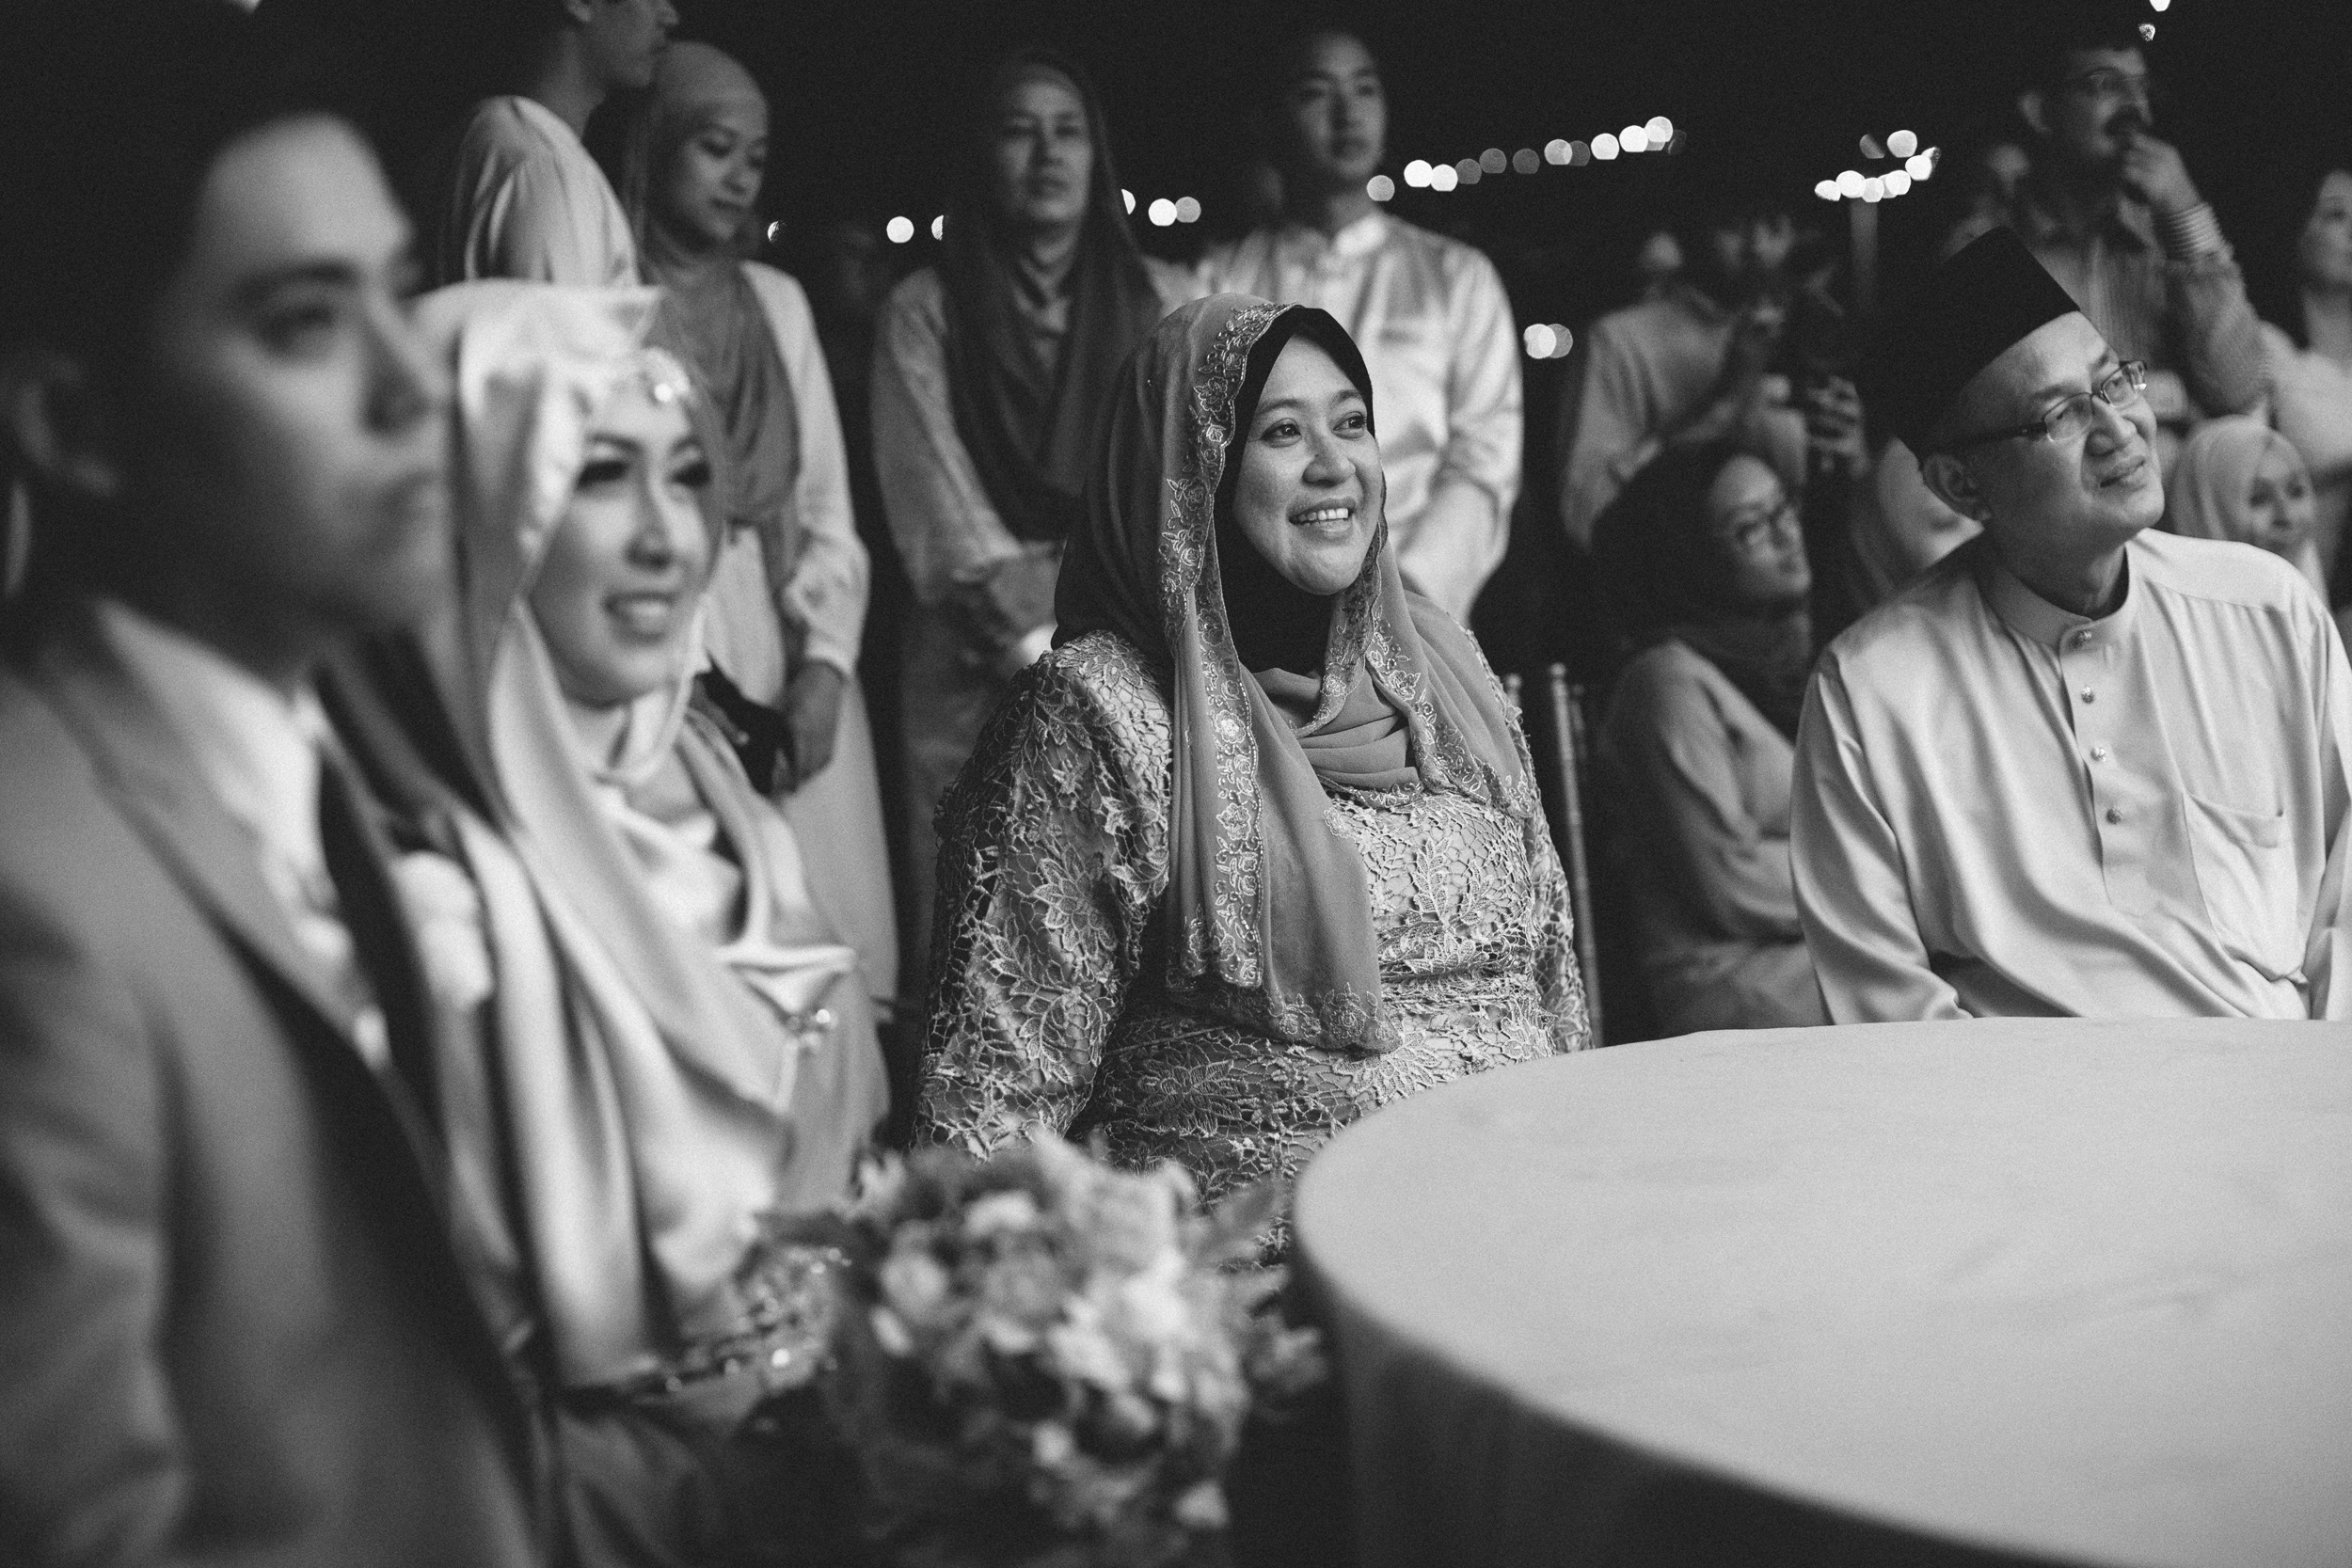 singapore-wedding-photographer-wemadethese-aisyah-helmi-68.jpg